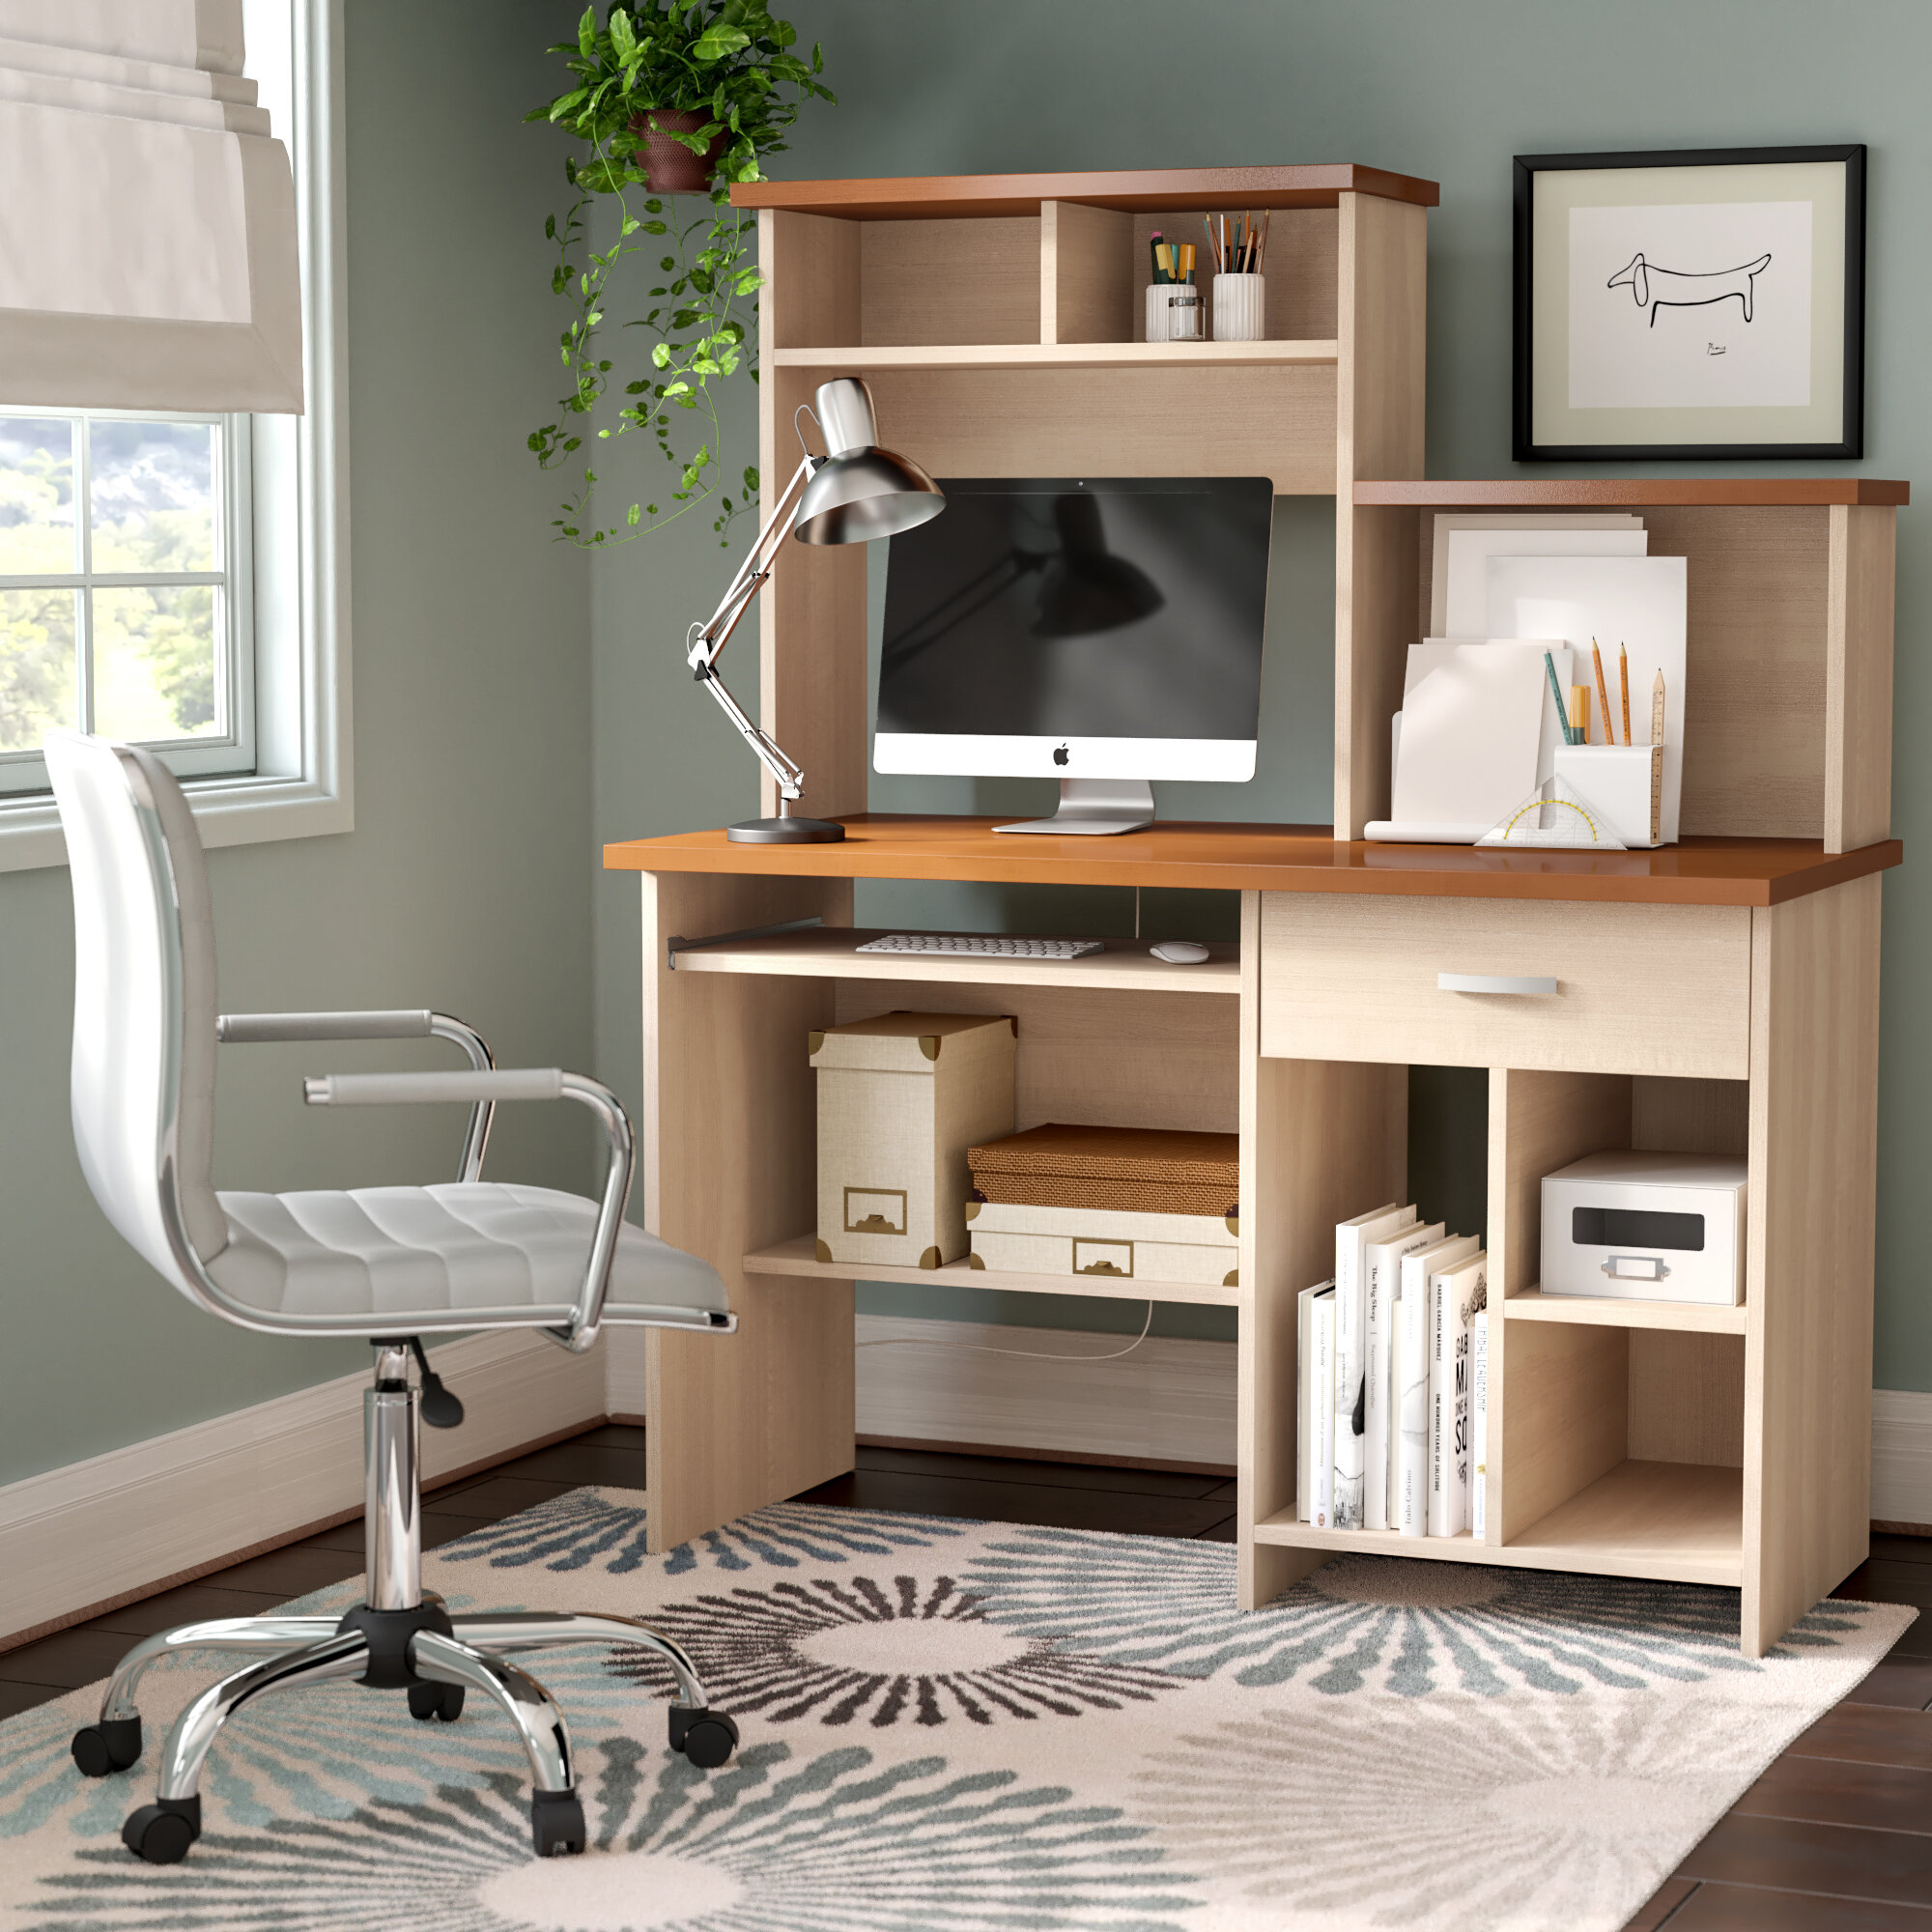 ab for study buy white storage table wh it rack office computer bookcase desk artiss now student itm shelf